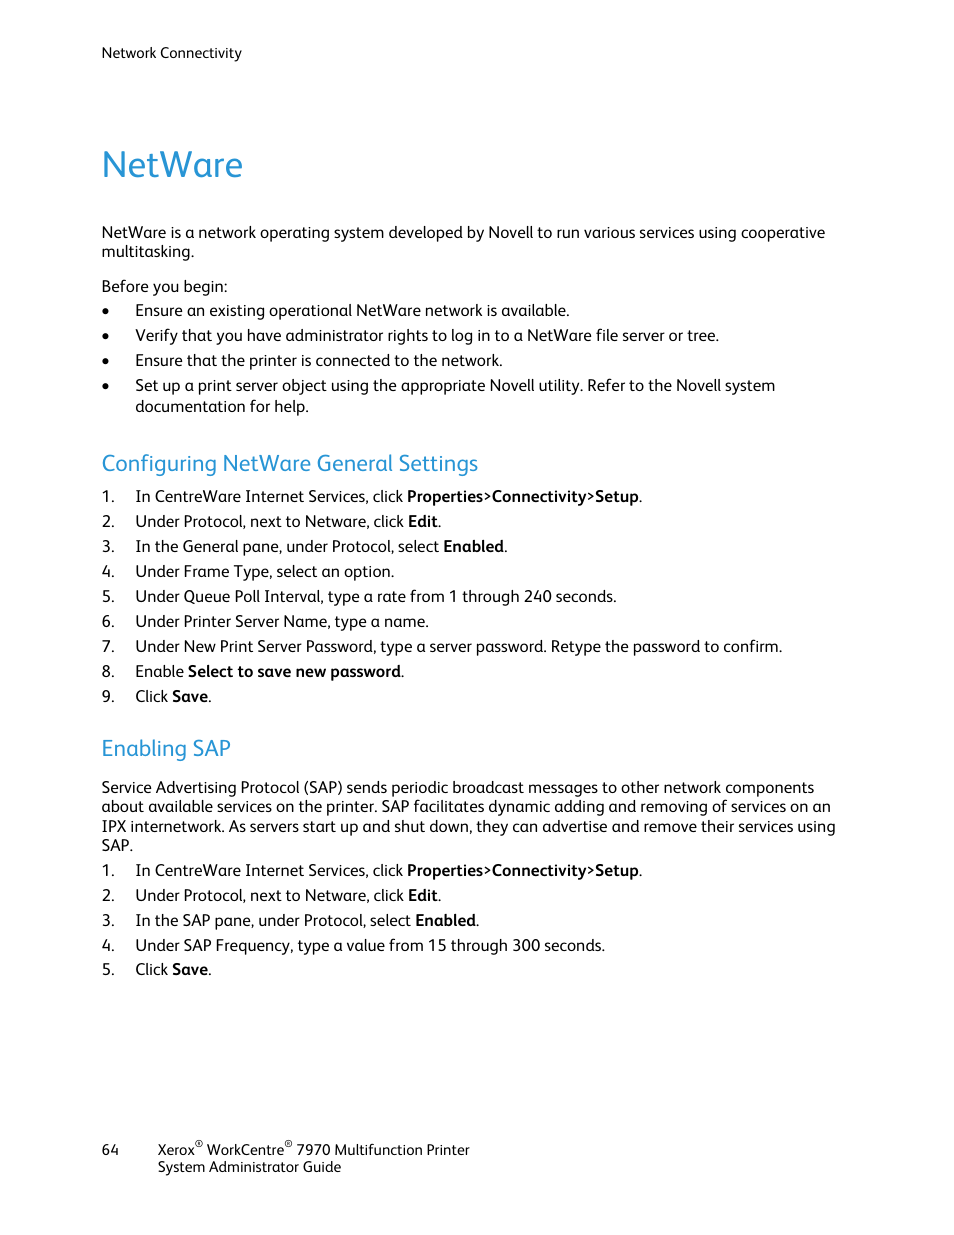 Netware, Configuring netware general settings, Enabling sap